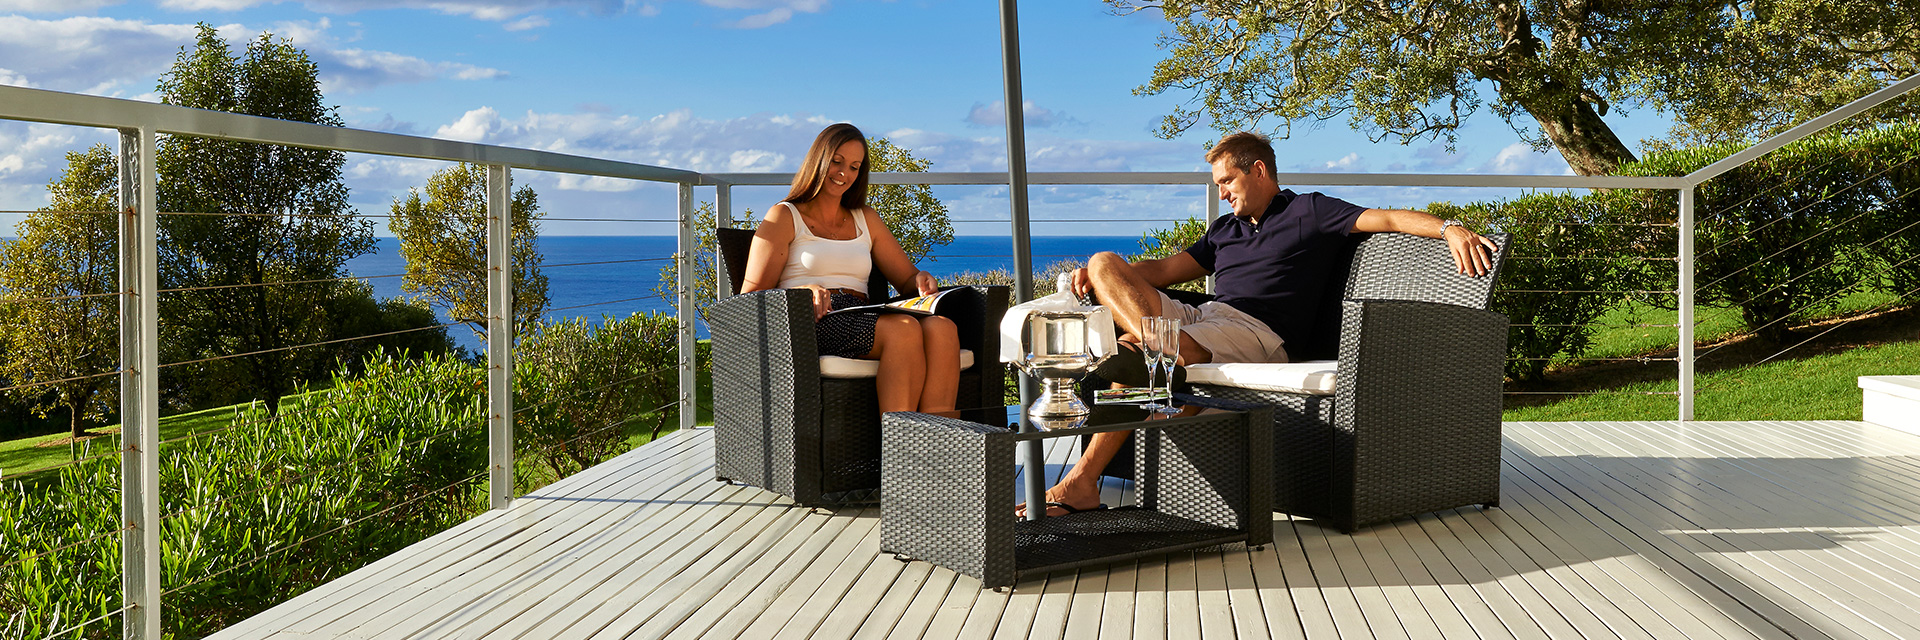 Couple sitting on rattan furniture on a wooden deck with the ocean in the background. A bottle of sparking wine and glas